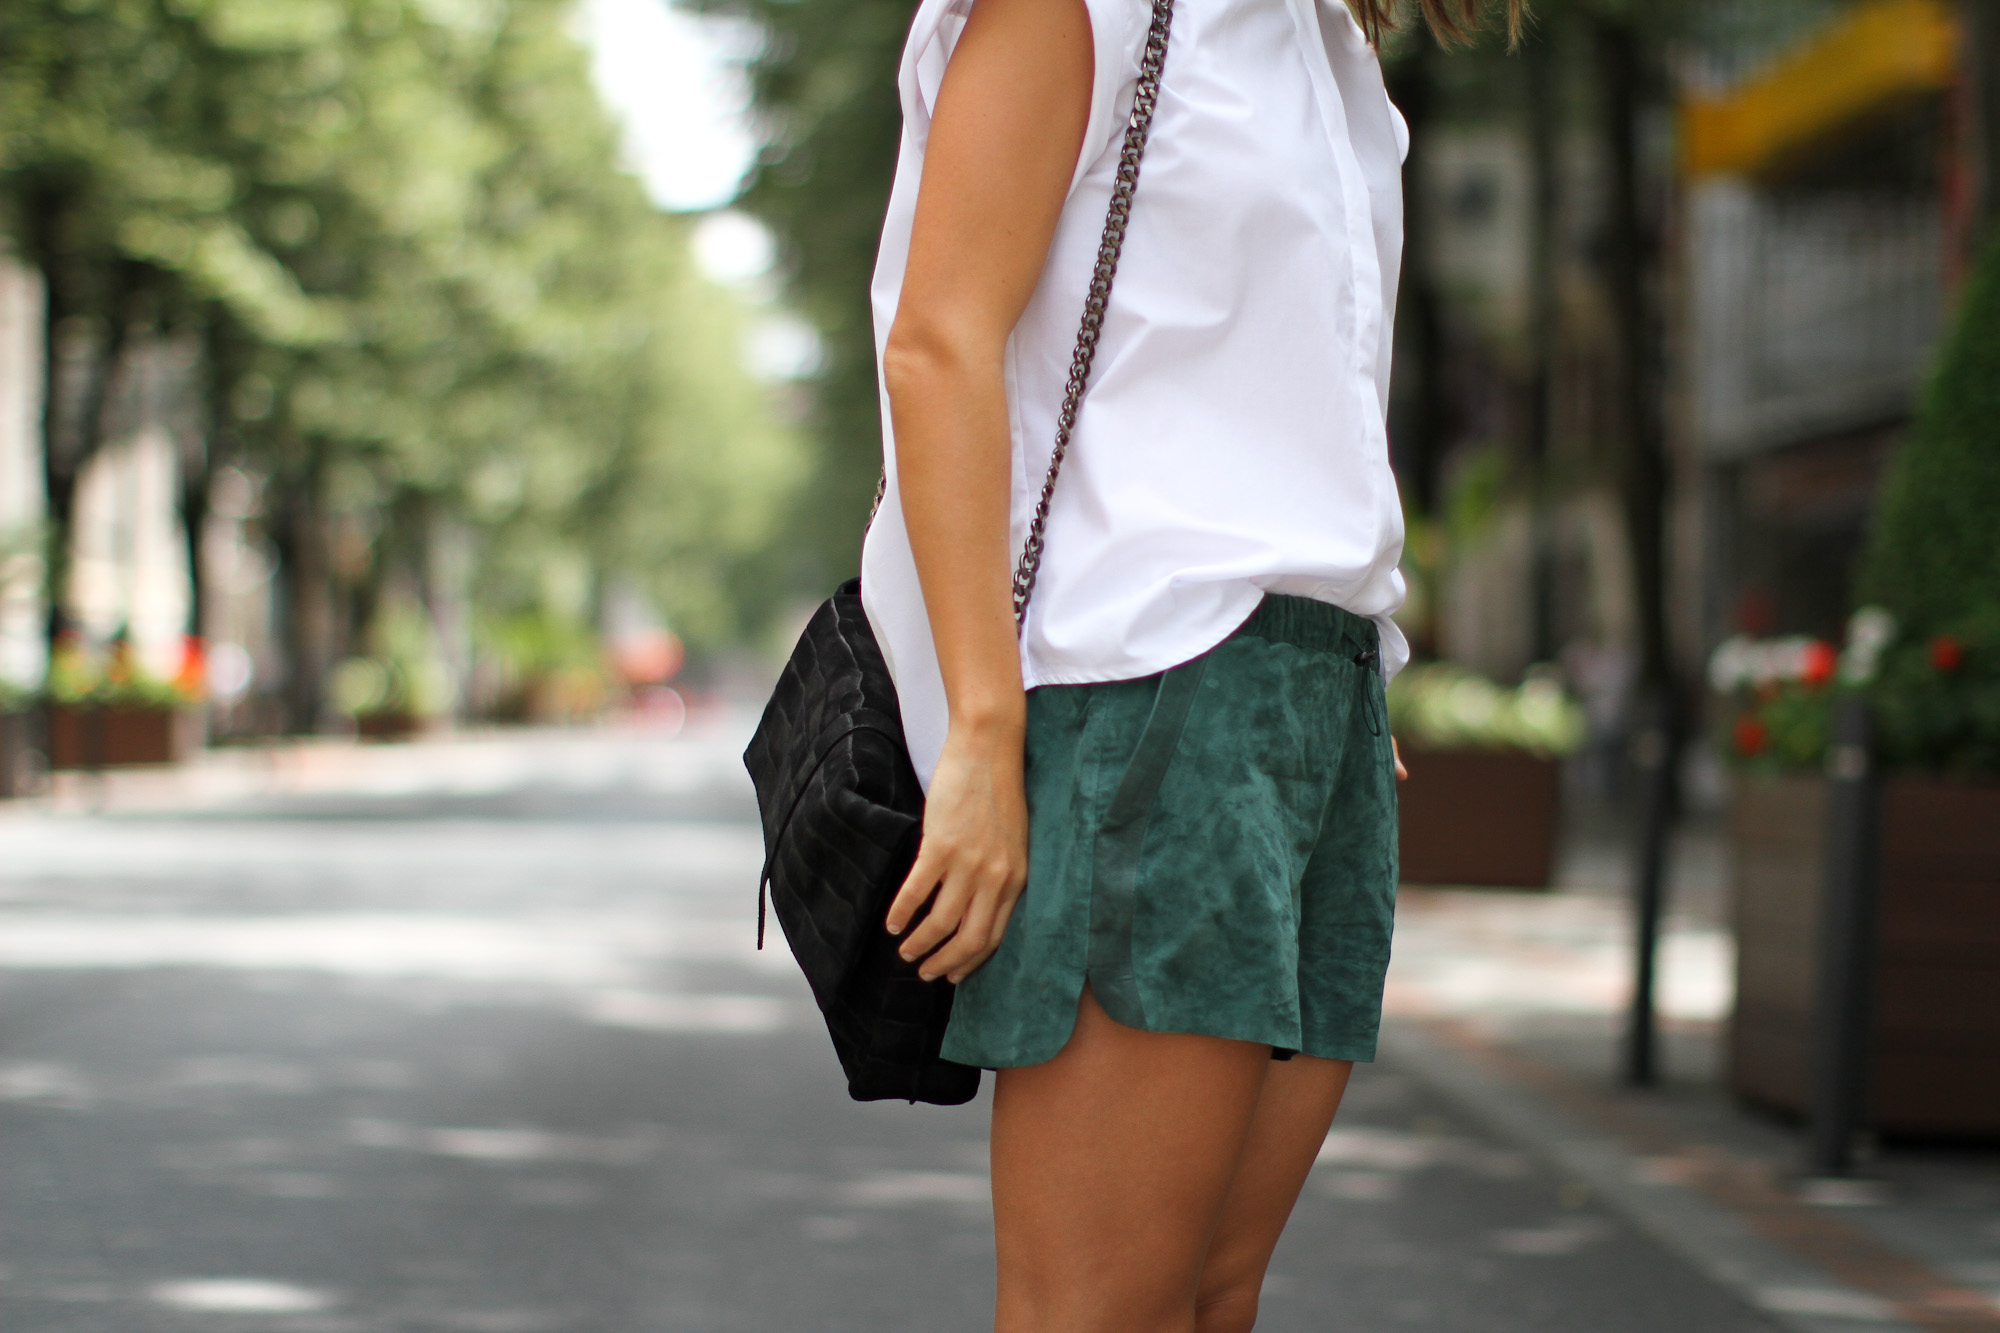 Clochet_h&m_trend_suede_running_shorts_white_platforms_-3